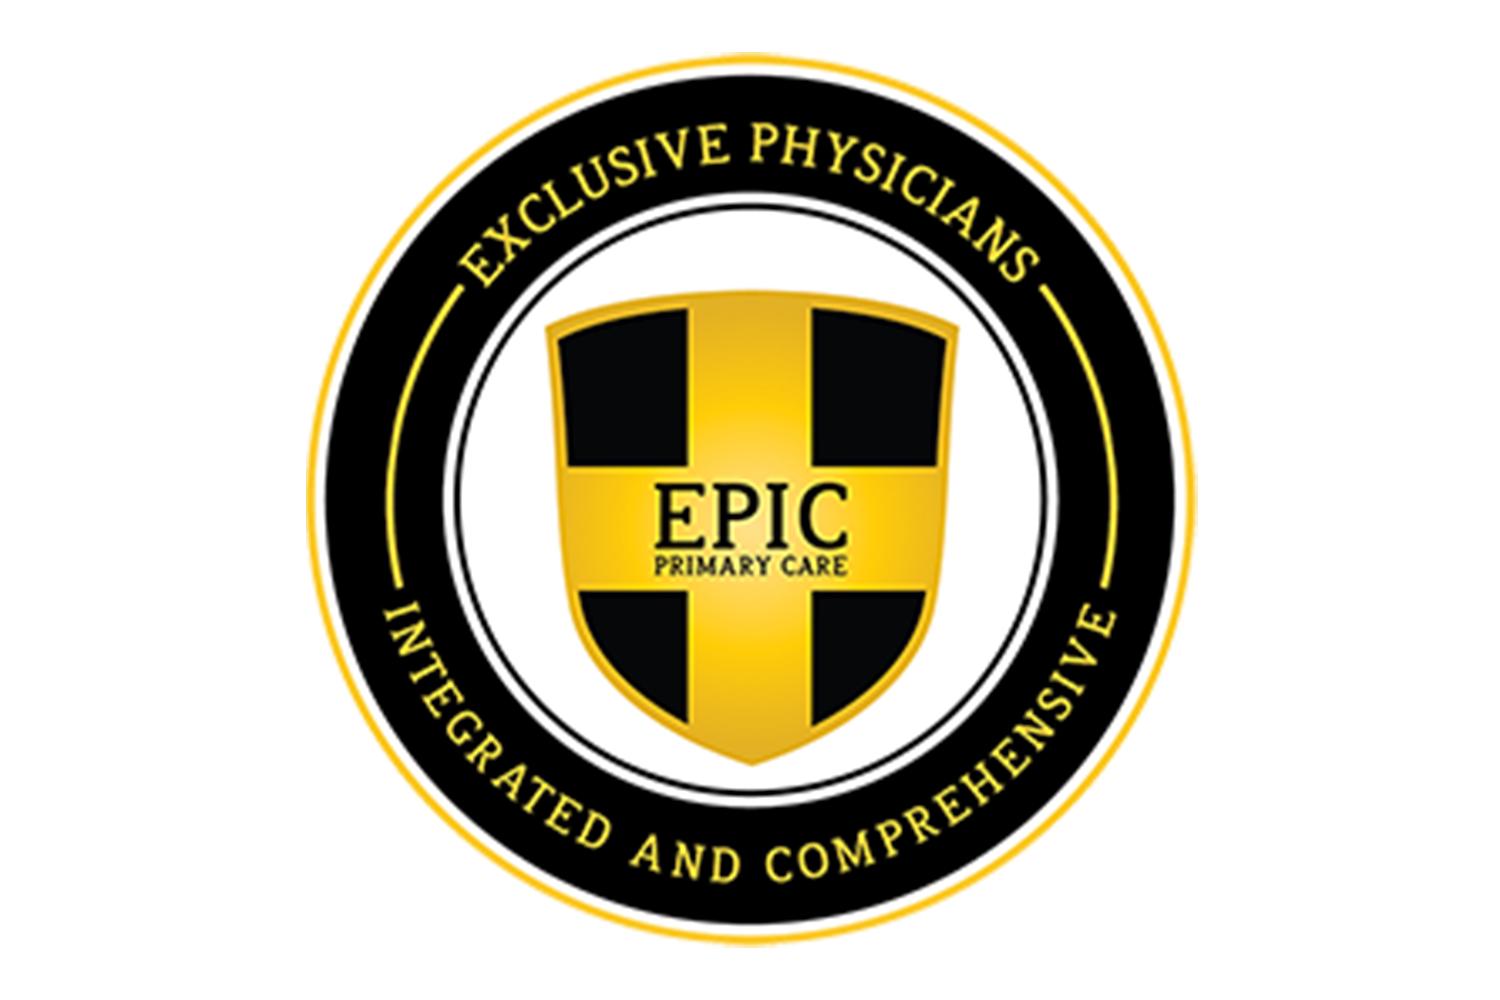 Epic Primary Care is Participates in Comprehensive Primary Care Plus